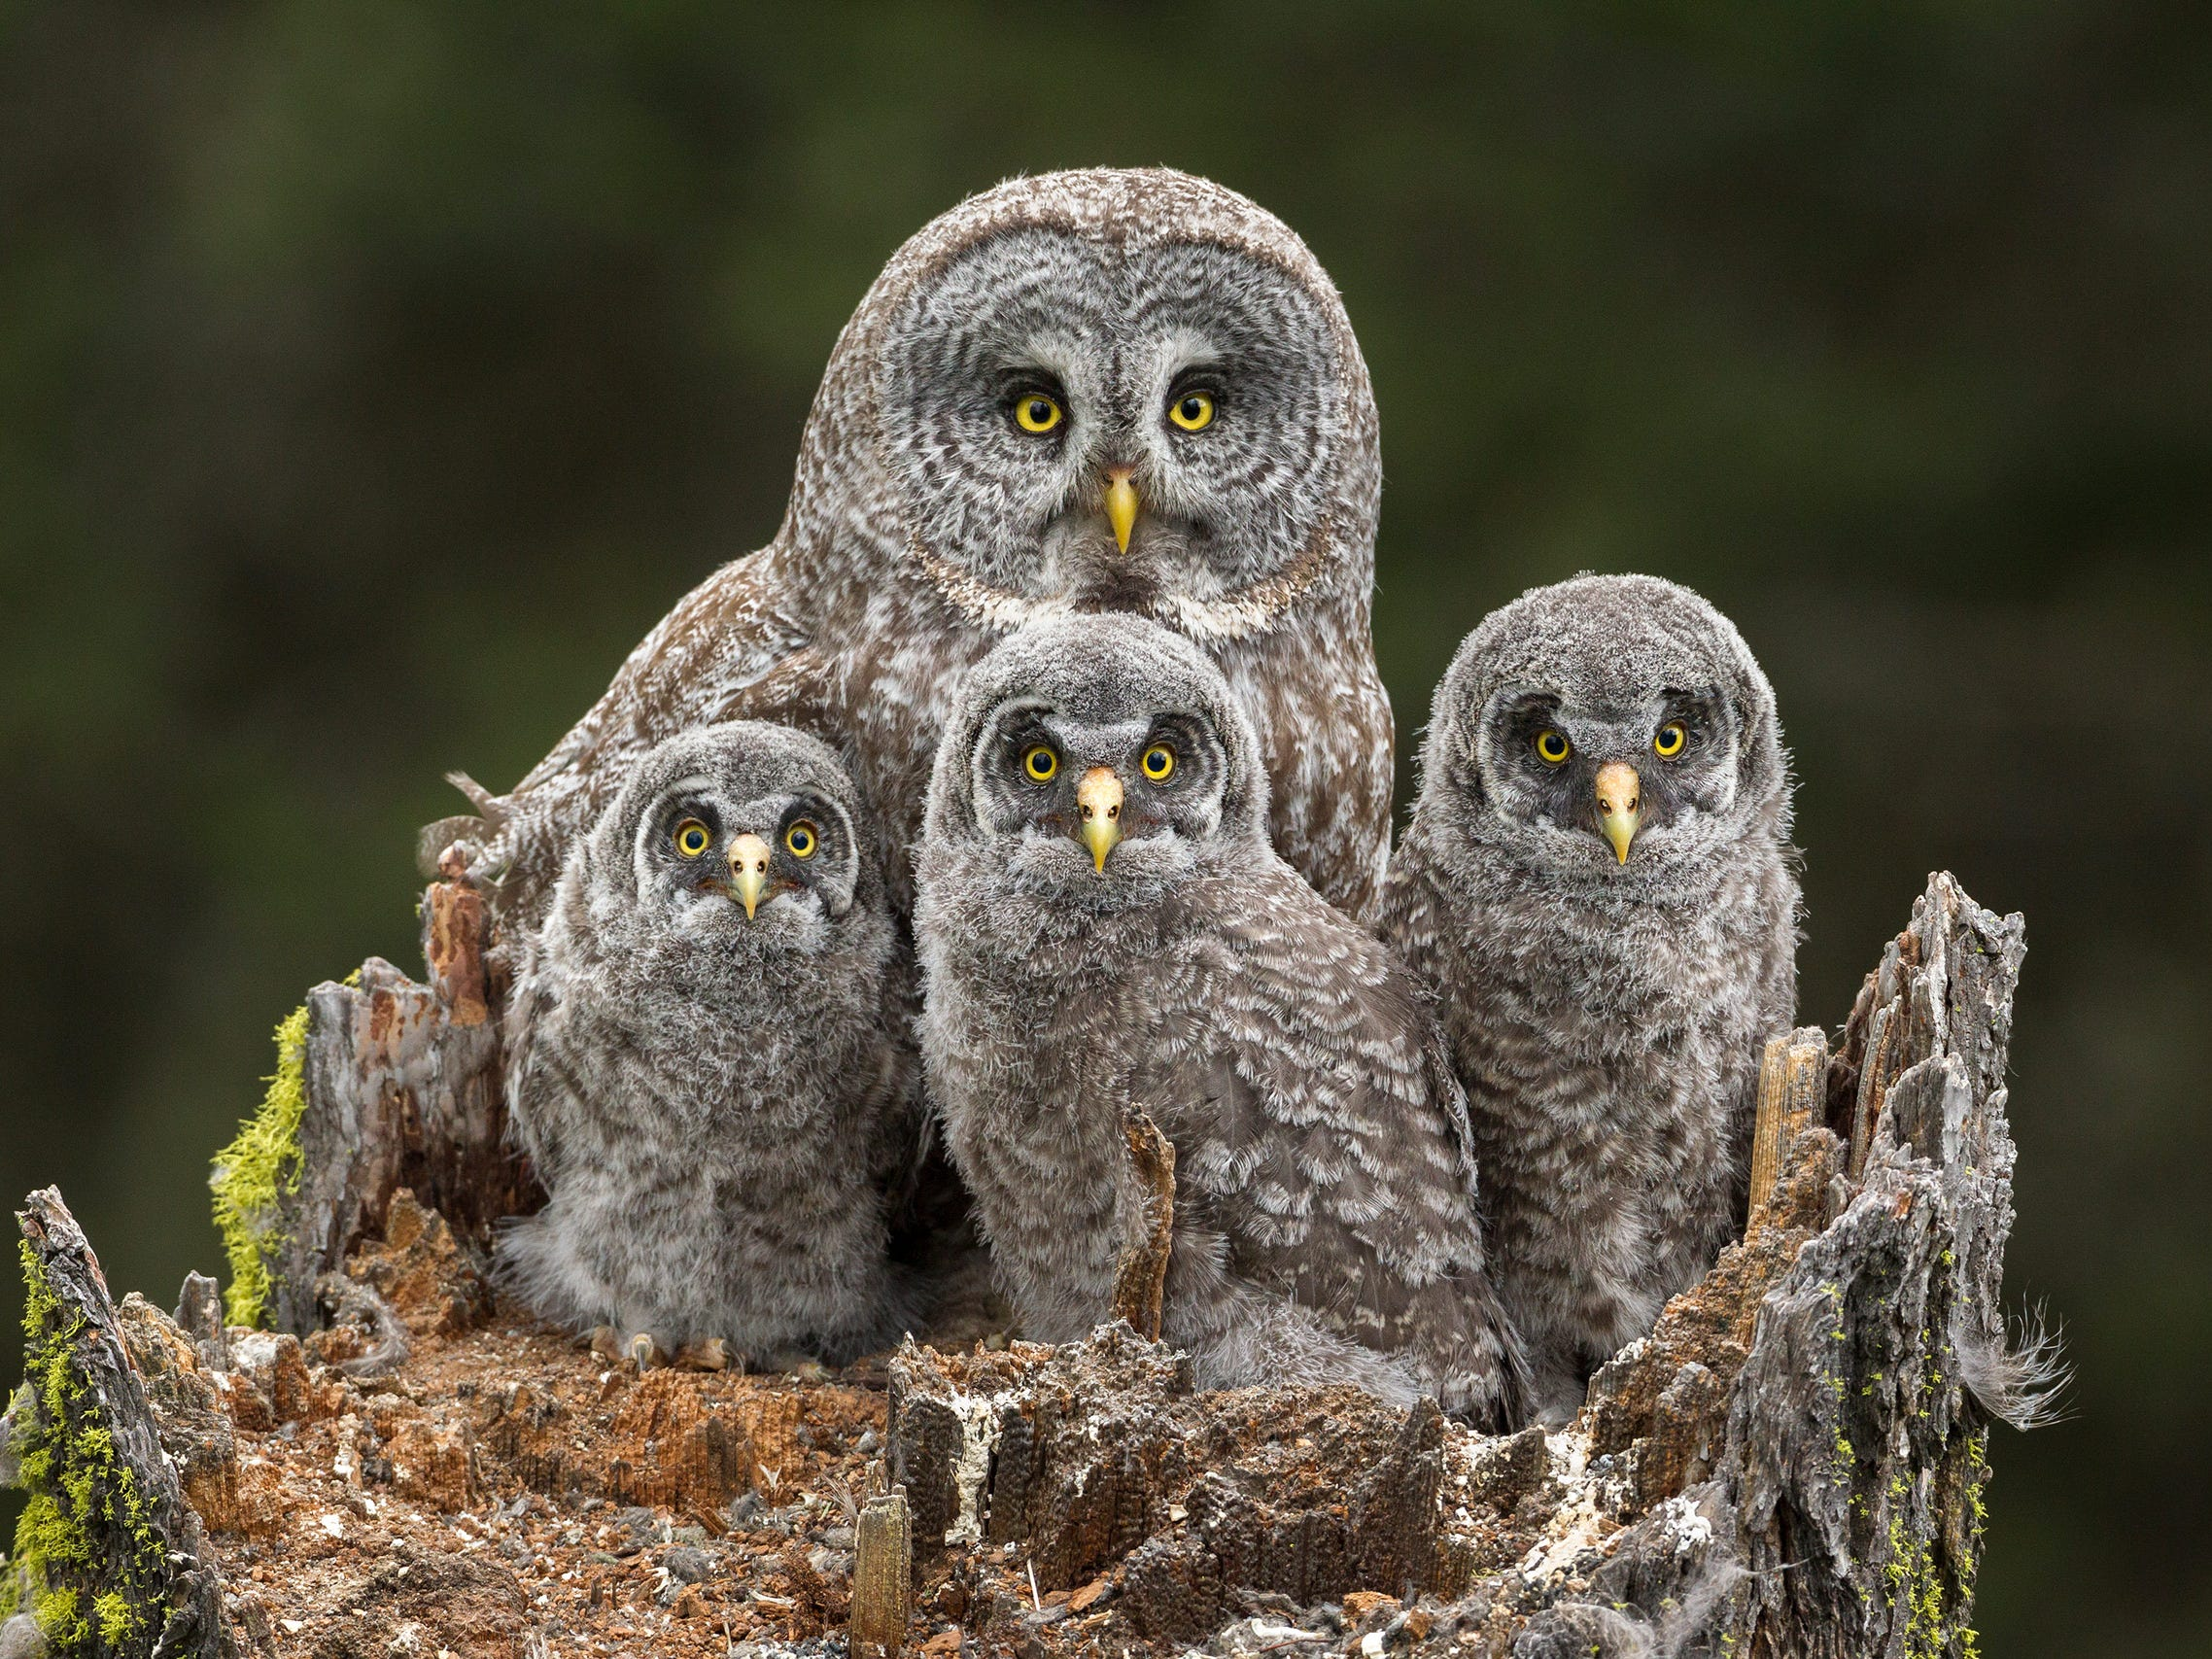 Family Portrait by Connor Stefanison, Canada -- A great grey owl and her chicks sit in their nest in the broken top of a Douglas fir tree in Kamloops, Canada. They looked towards Connor only twice as he watched them during the nesting season from a tree hide 50 feet up. -- Canon 1D Mark IV + Canon 500mm f4 IS lens; 1/200 sec at f7.1; ISO 1250; Manfrotto monopod.